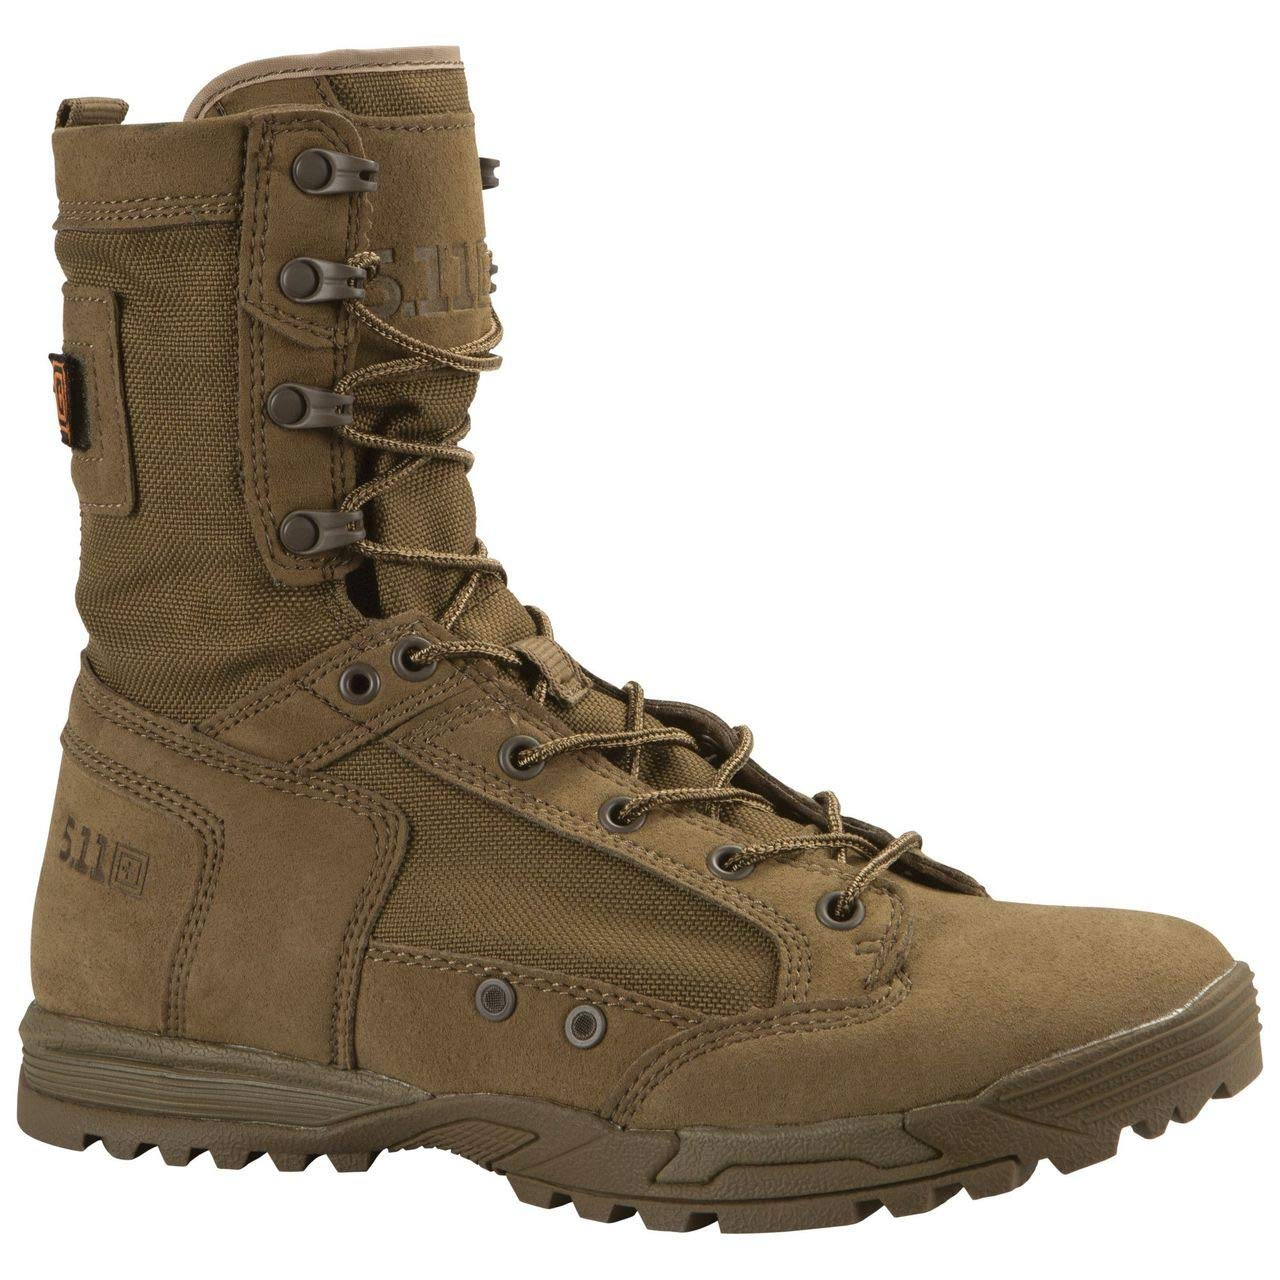 5.11 Men's Skyweight Rapid Dry Military and Tactical Boot, Dark Coyote, 12 M US